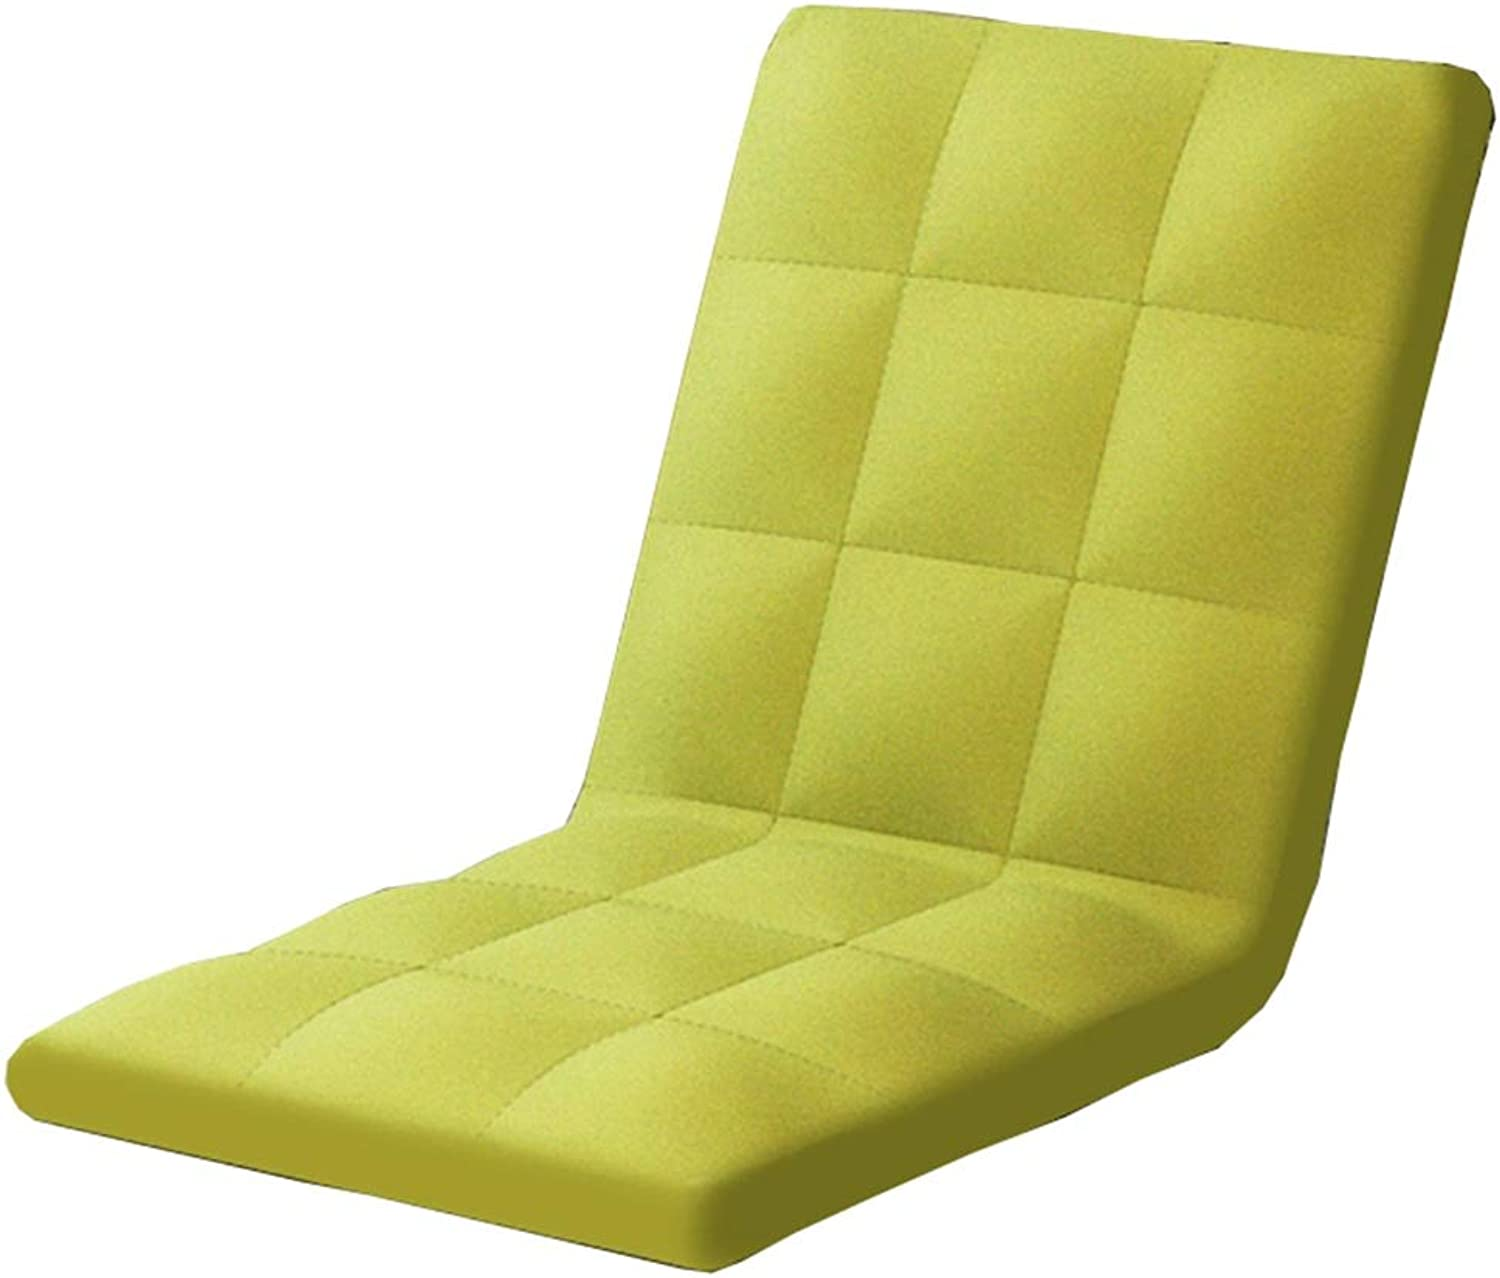 LJFYXZ Floor Folding Gaming Sofa Chair Single Foldable Cushion 5-Speed Adjustment Washable Dorm Room Armchair (color   Green)